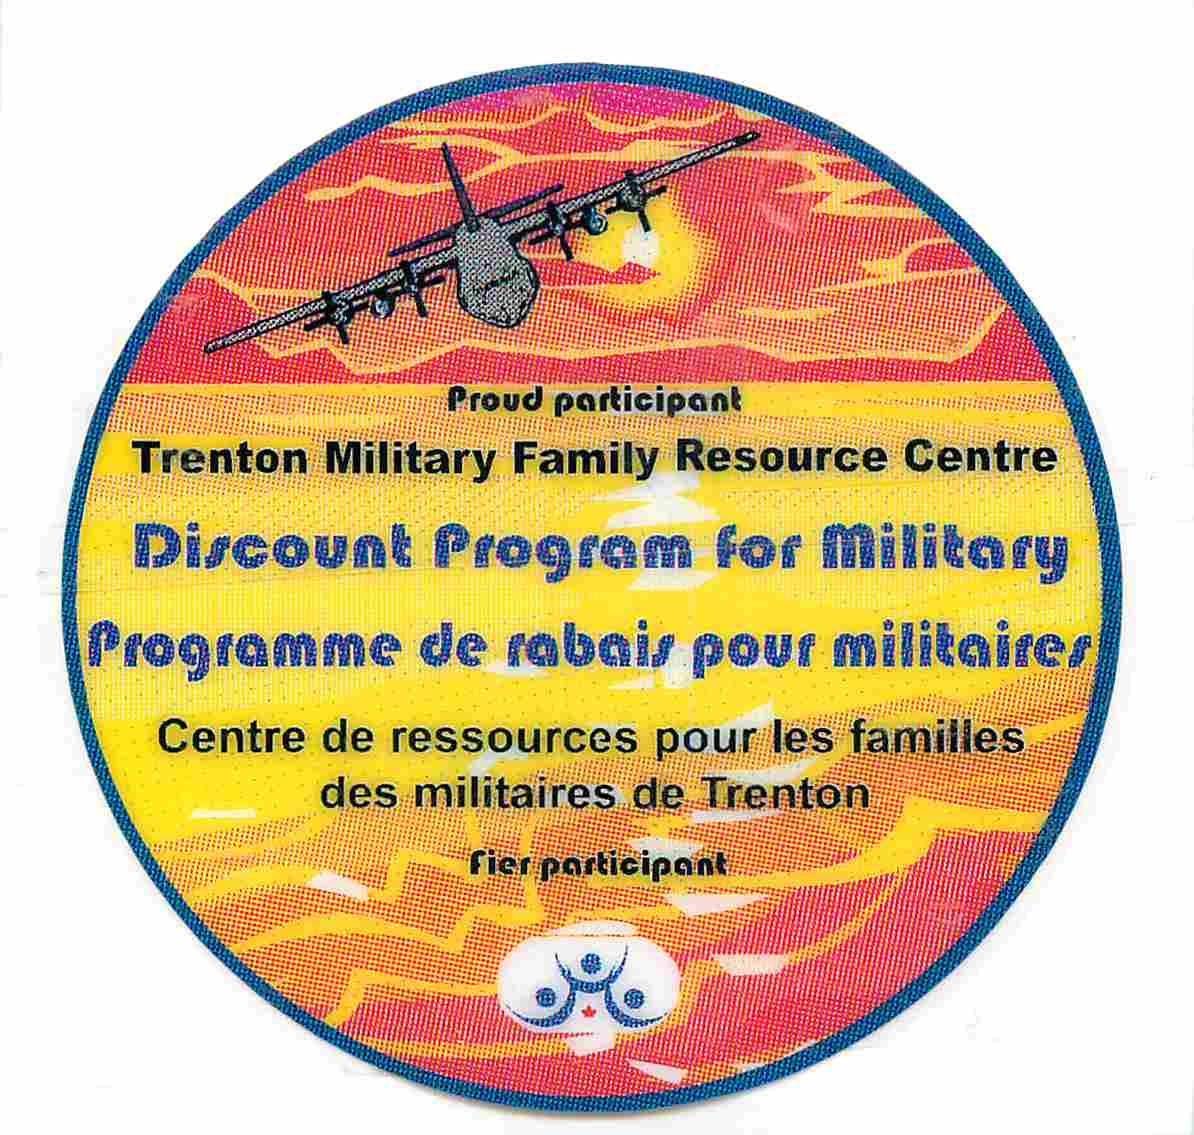 Proud supporter of the Trenton Military Family Resource Centre